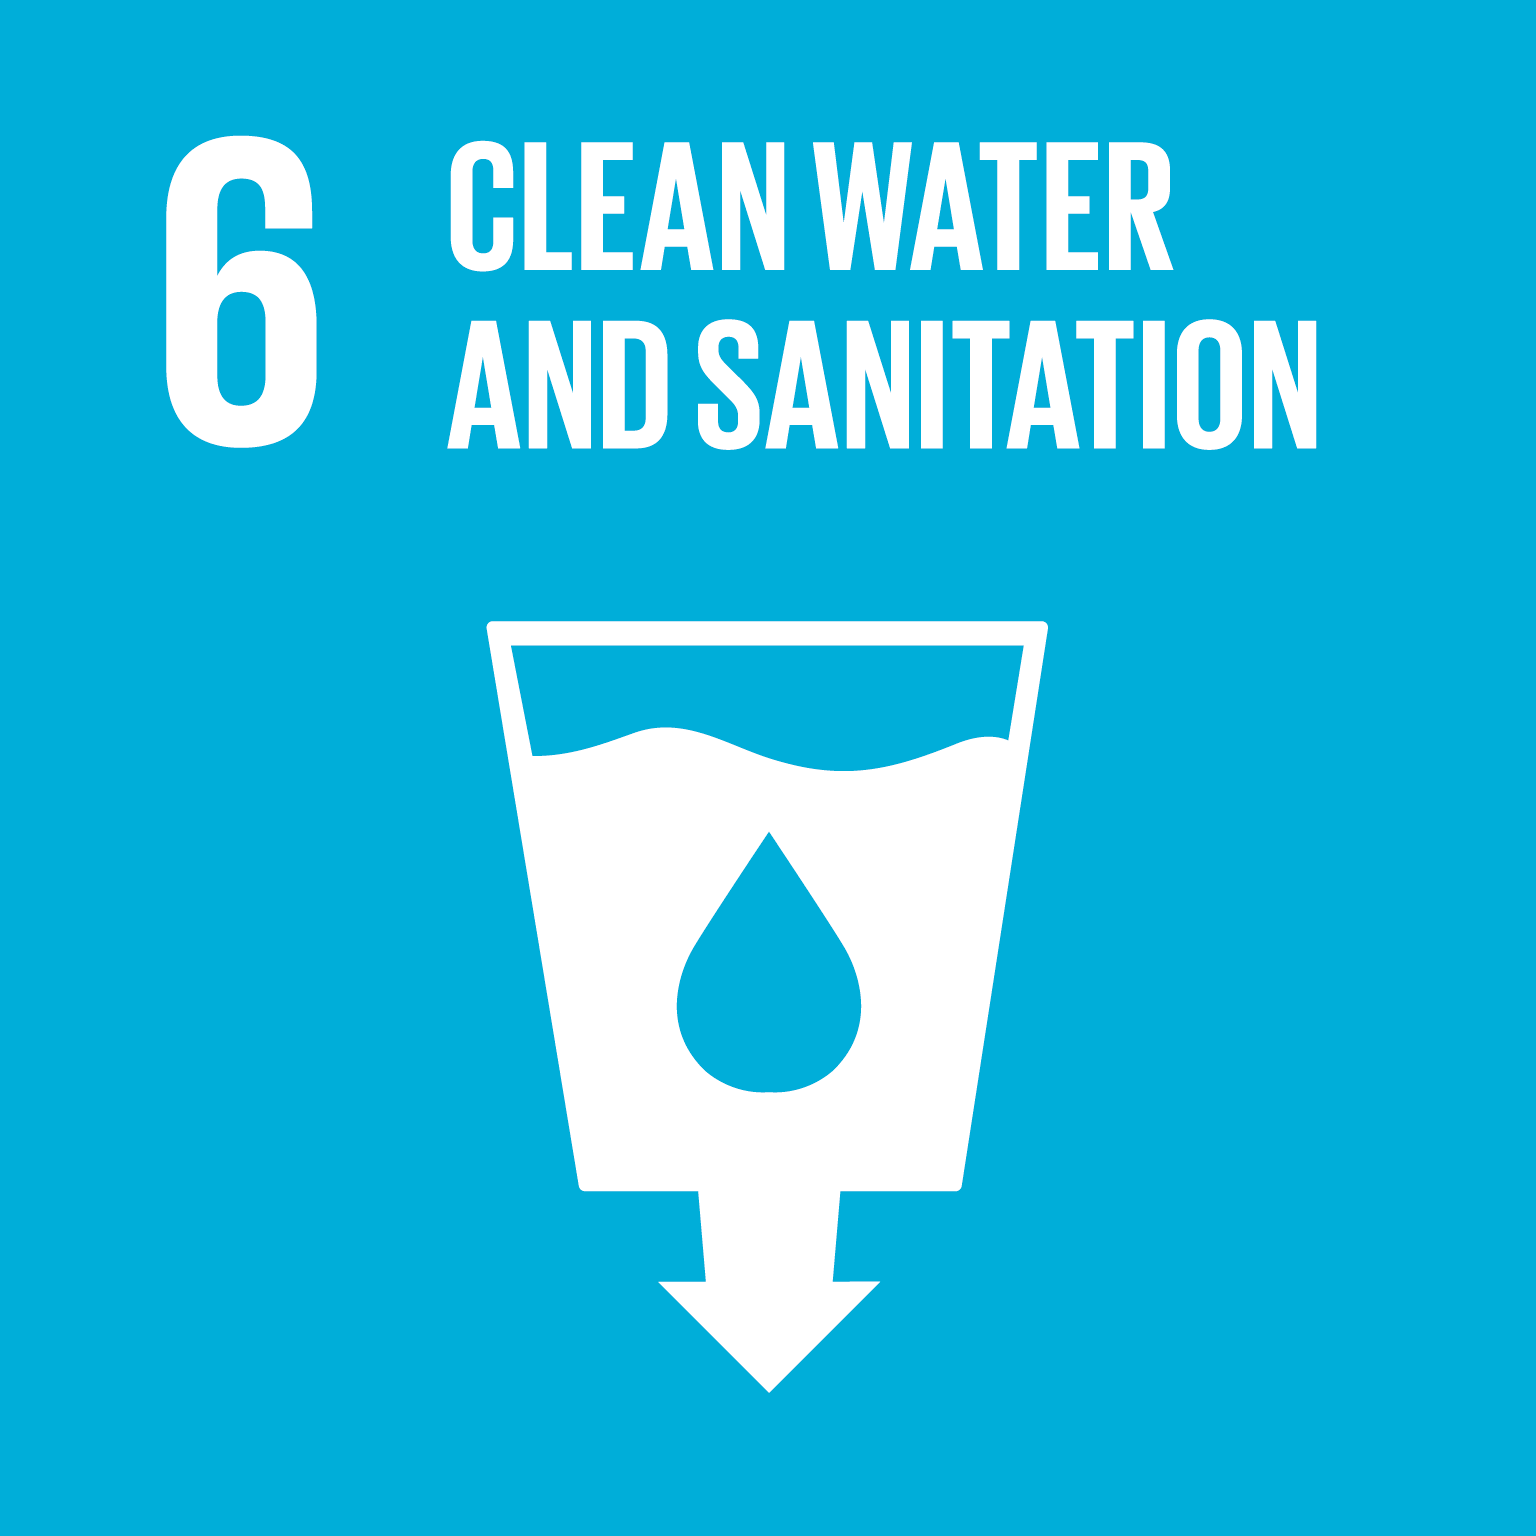 Ensure availability and sustainable management of water and sanitation for all.